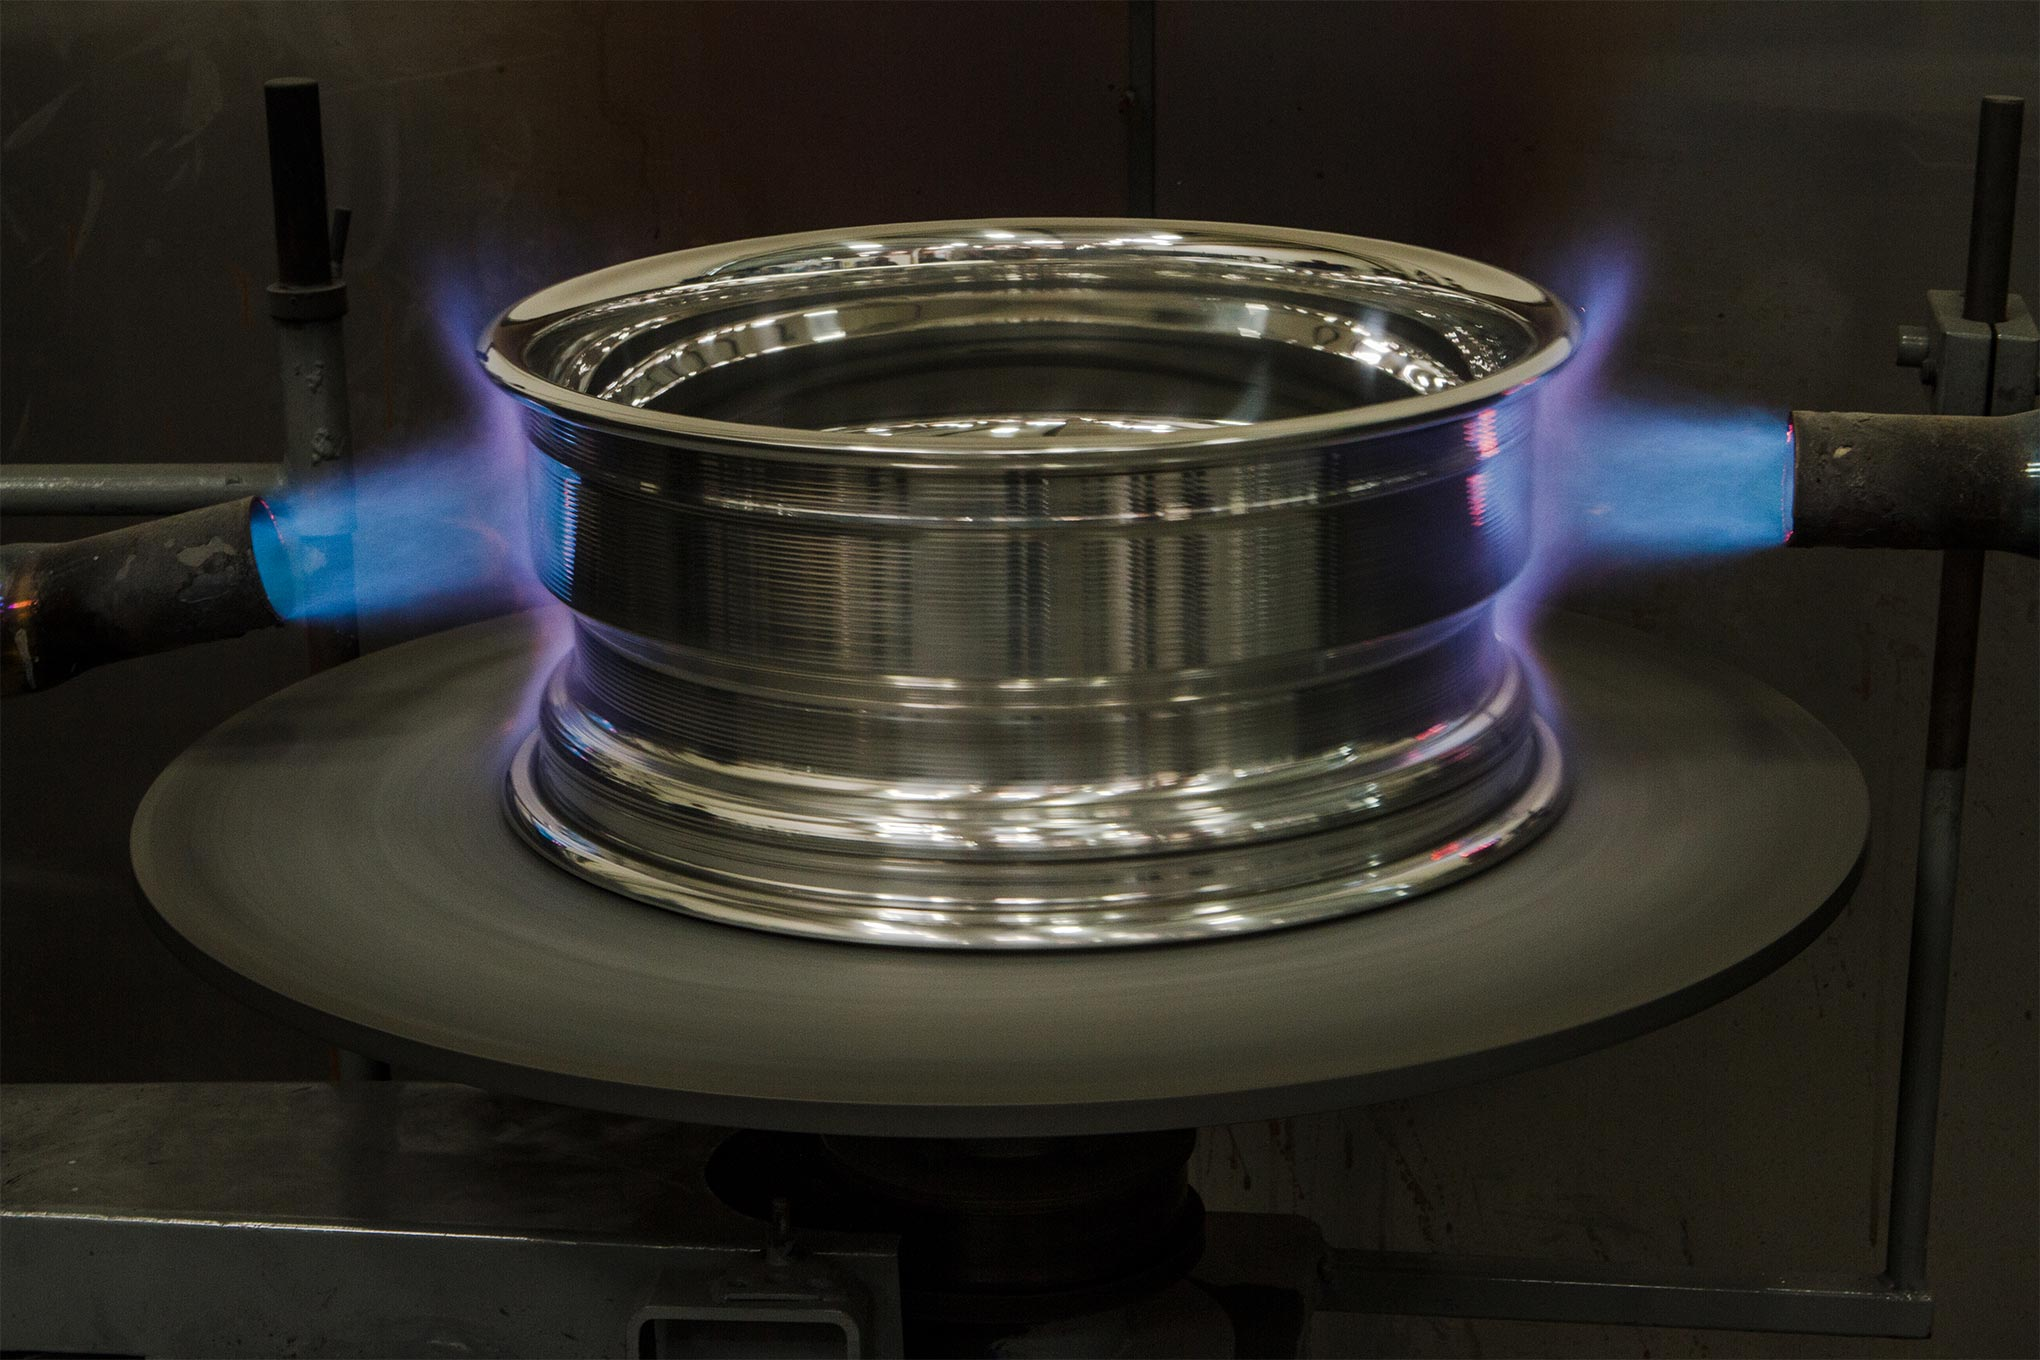 Once again, heat is used to expand the forged rim's shell as it rotates on this fixture.